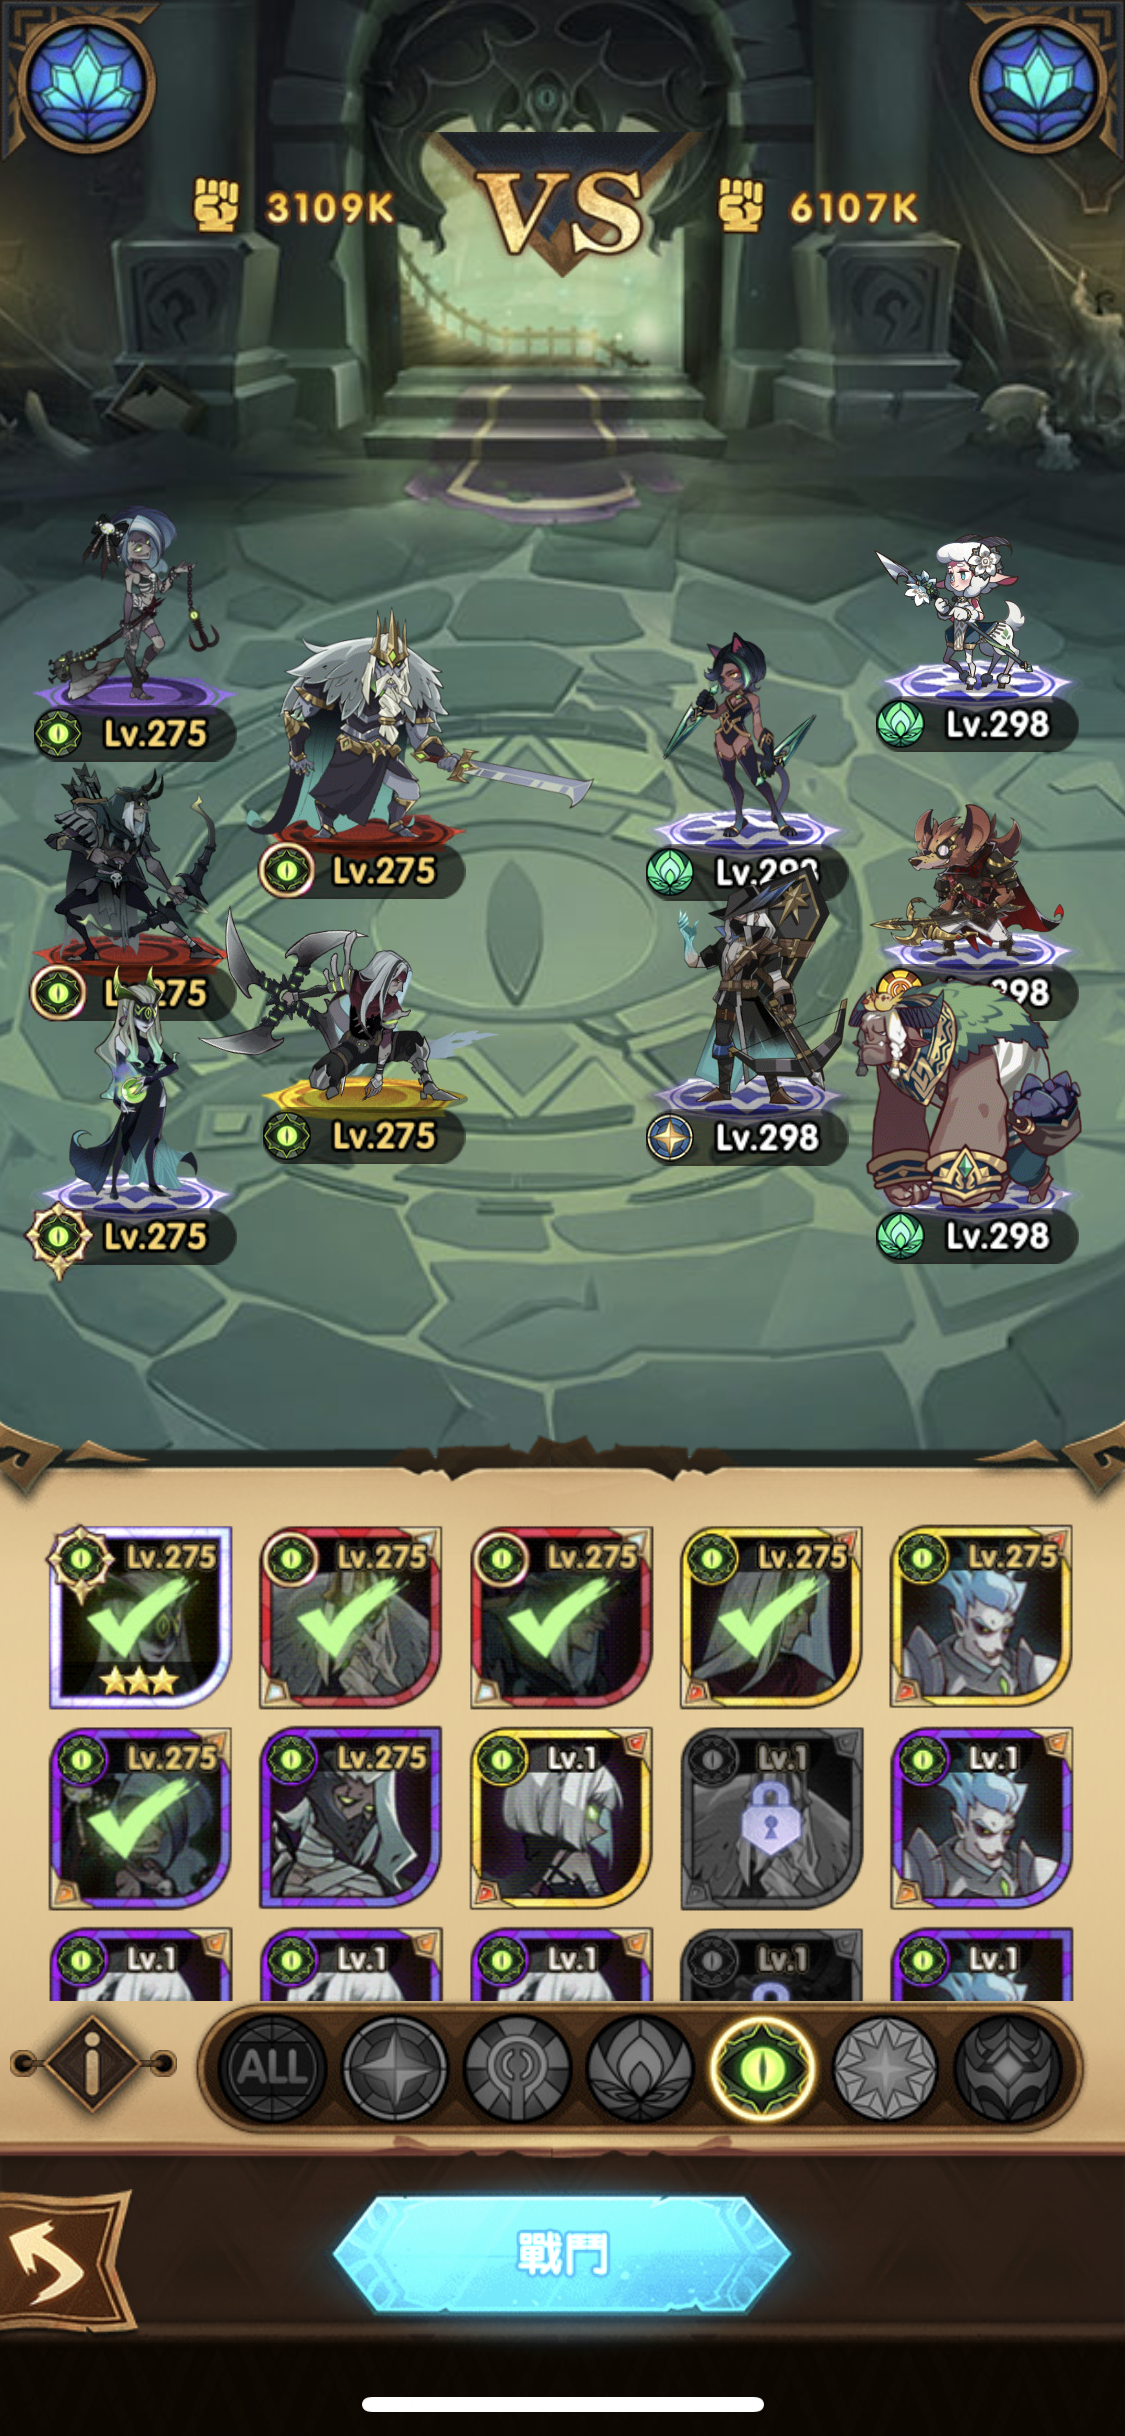 Arena 攻略 Afk